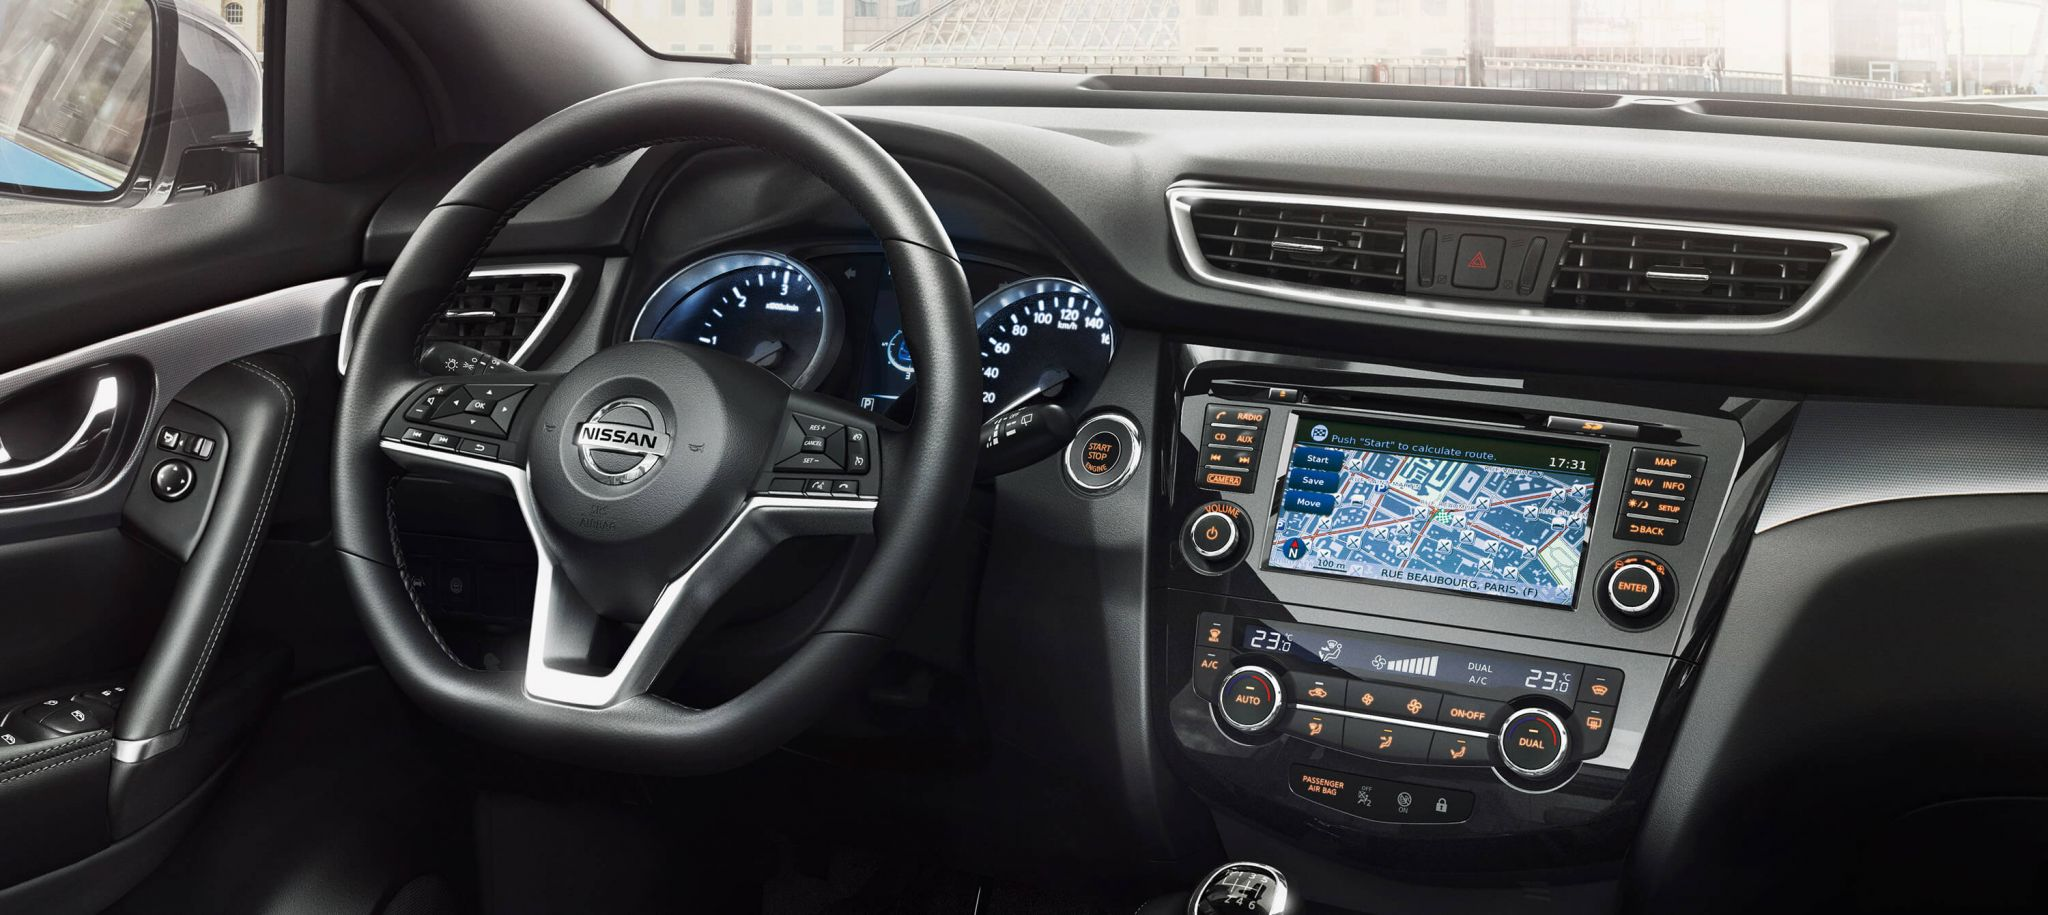 Nissan qashqai interieur bochane groep for Interieur foto s